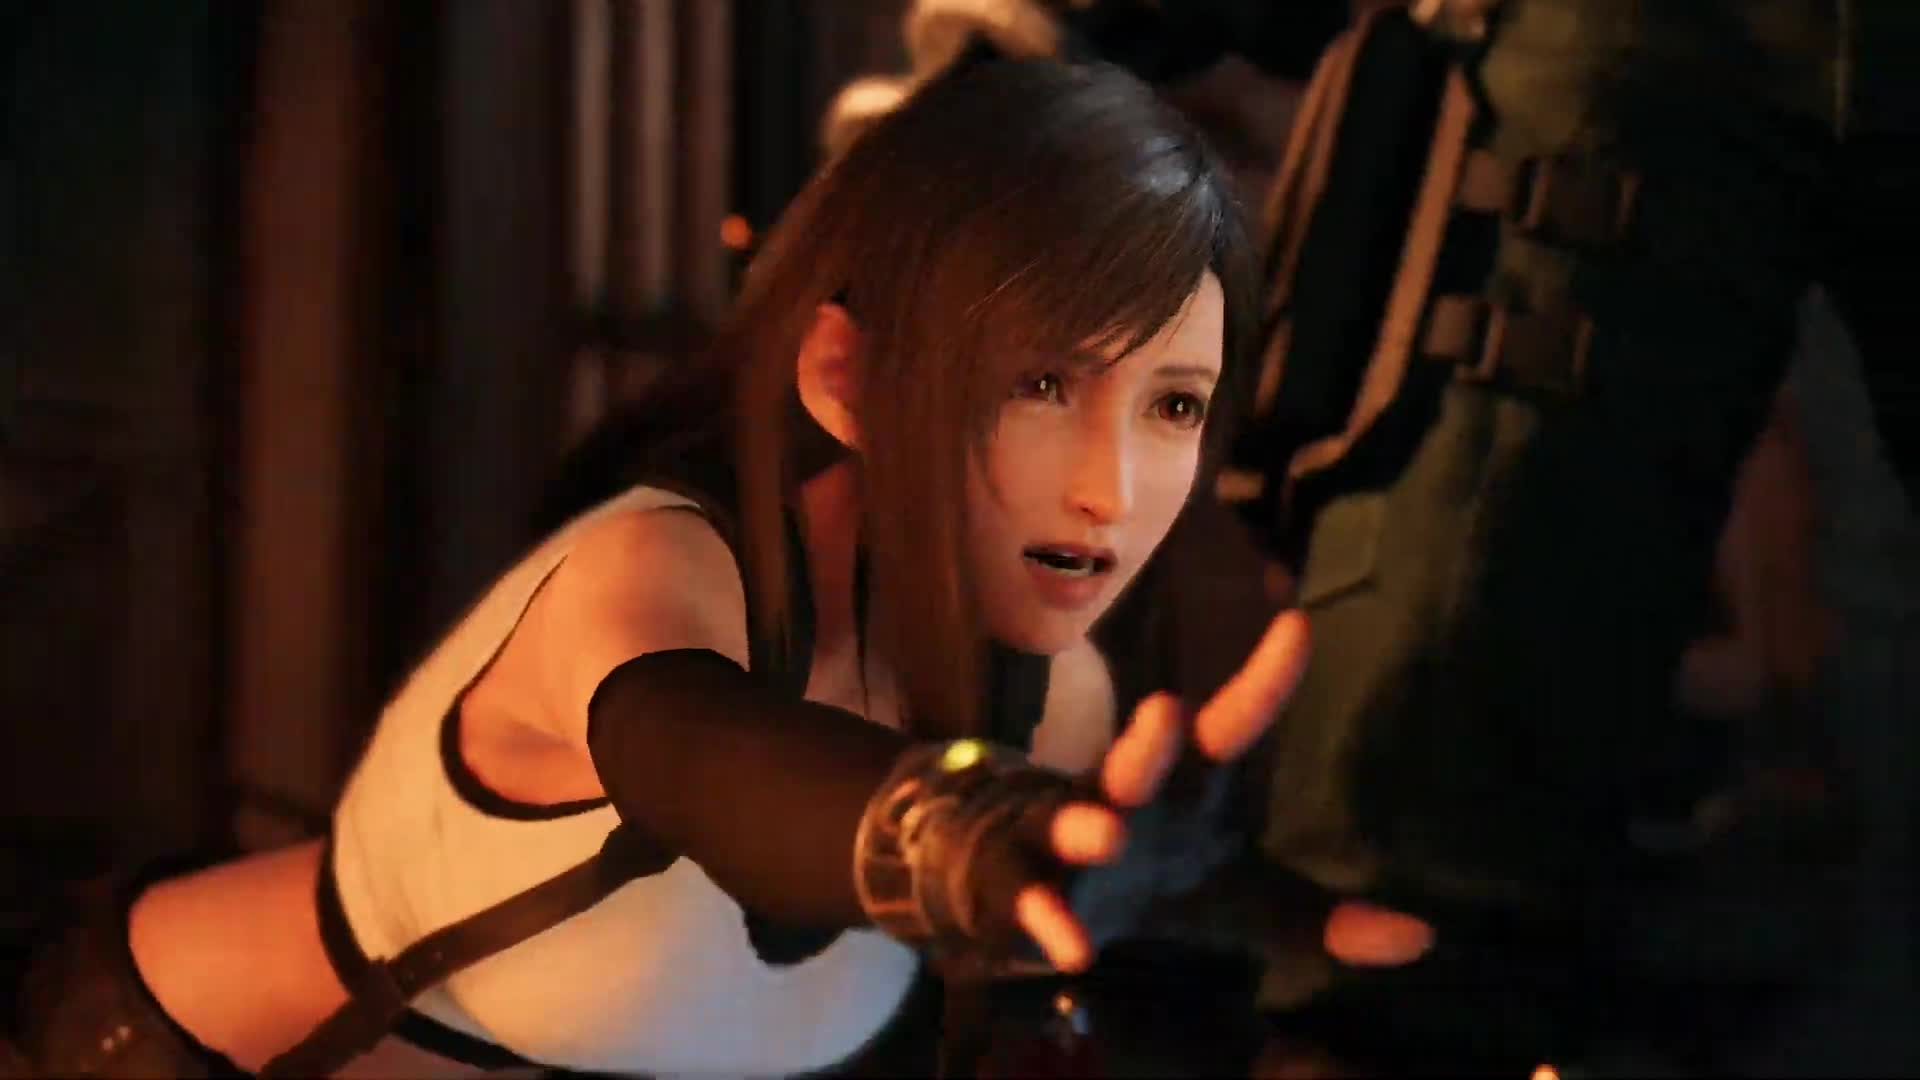 Trailer, Sony, PlayStation 4, Playstation, PS4, Sony PlayStation 4, Rollenspiel, Sony PS4, Square Enix, Final Fantasy, final fantasy 7, Final Fantasy VII, Final Fantasy VII Remake